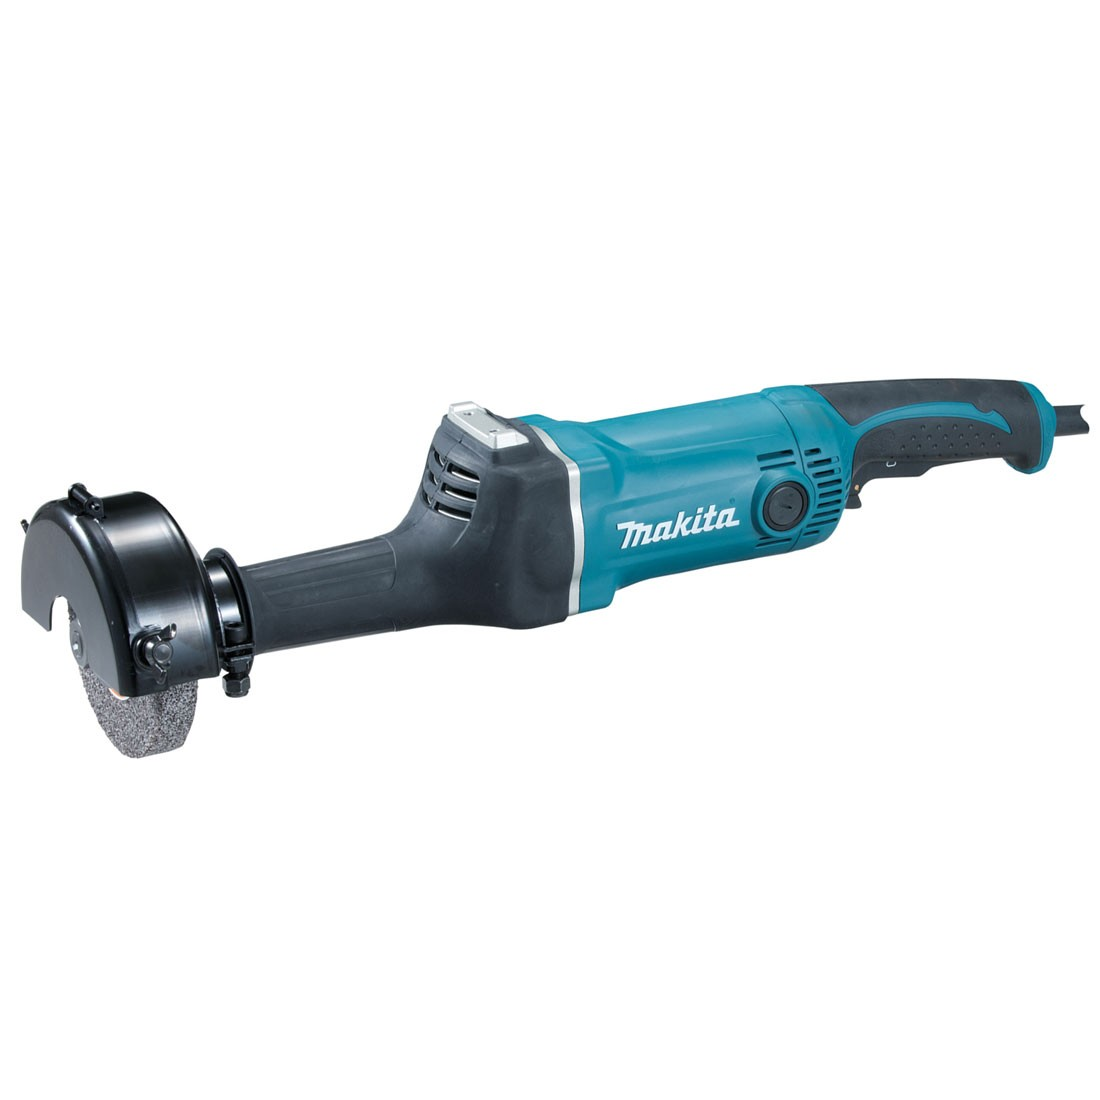 Makita GS6000 150mm Paddle Switch Straight Grinder